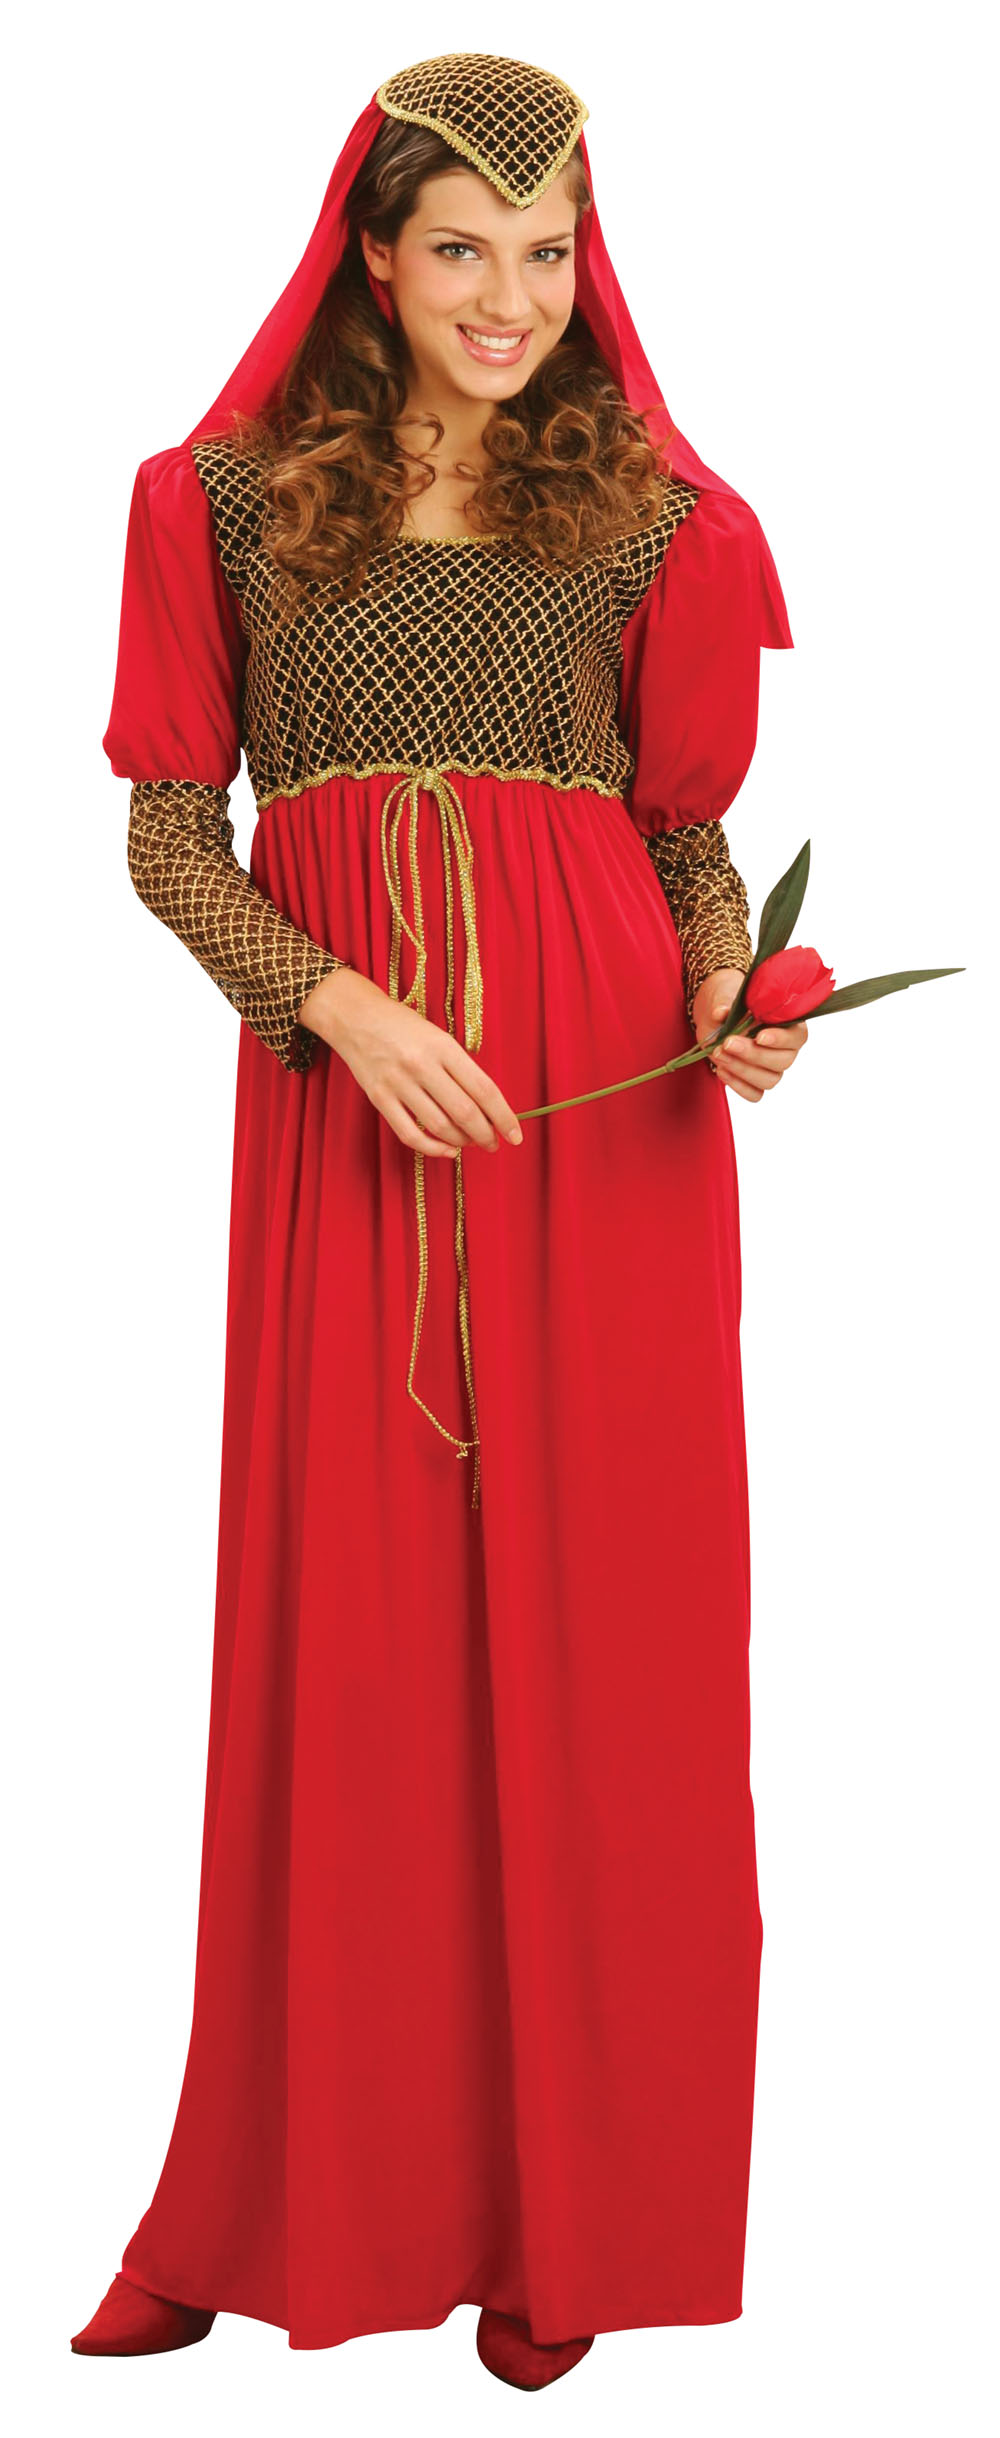 Ladies Historic Juliette Fancy Dress Costume Womens Renaissance Outfit UK 18-22